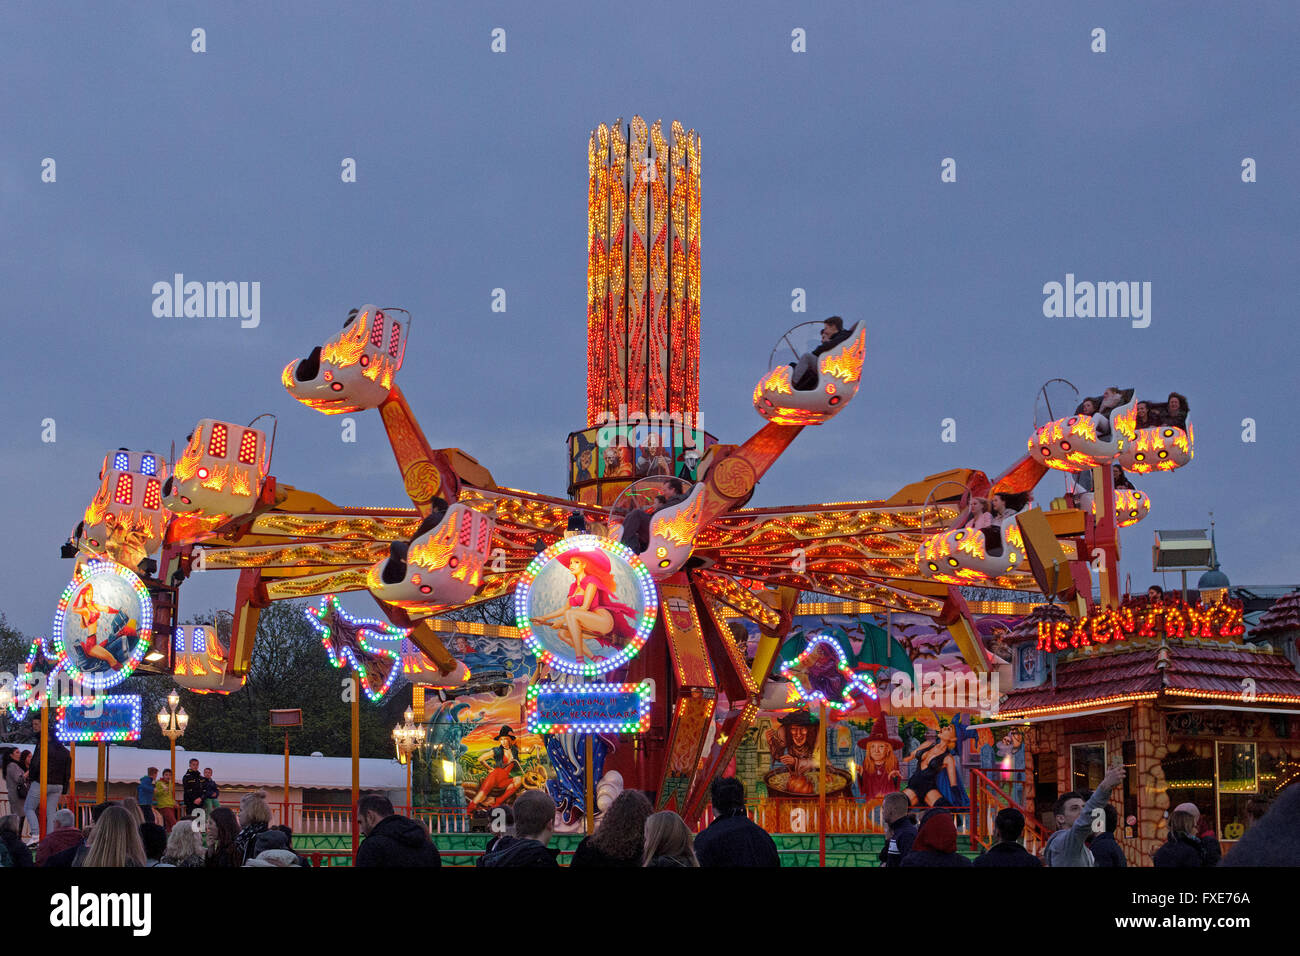 ride hexentanz fun fair dom hamburg germany stock photo royalty free image 102345890. Black Bedroom Furniture Sets. Home Design Ideas